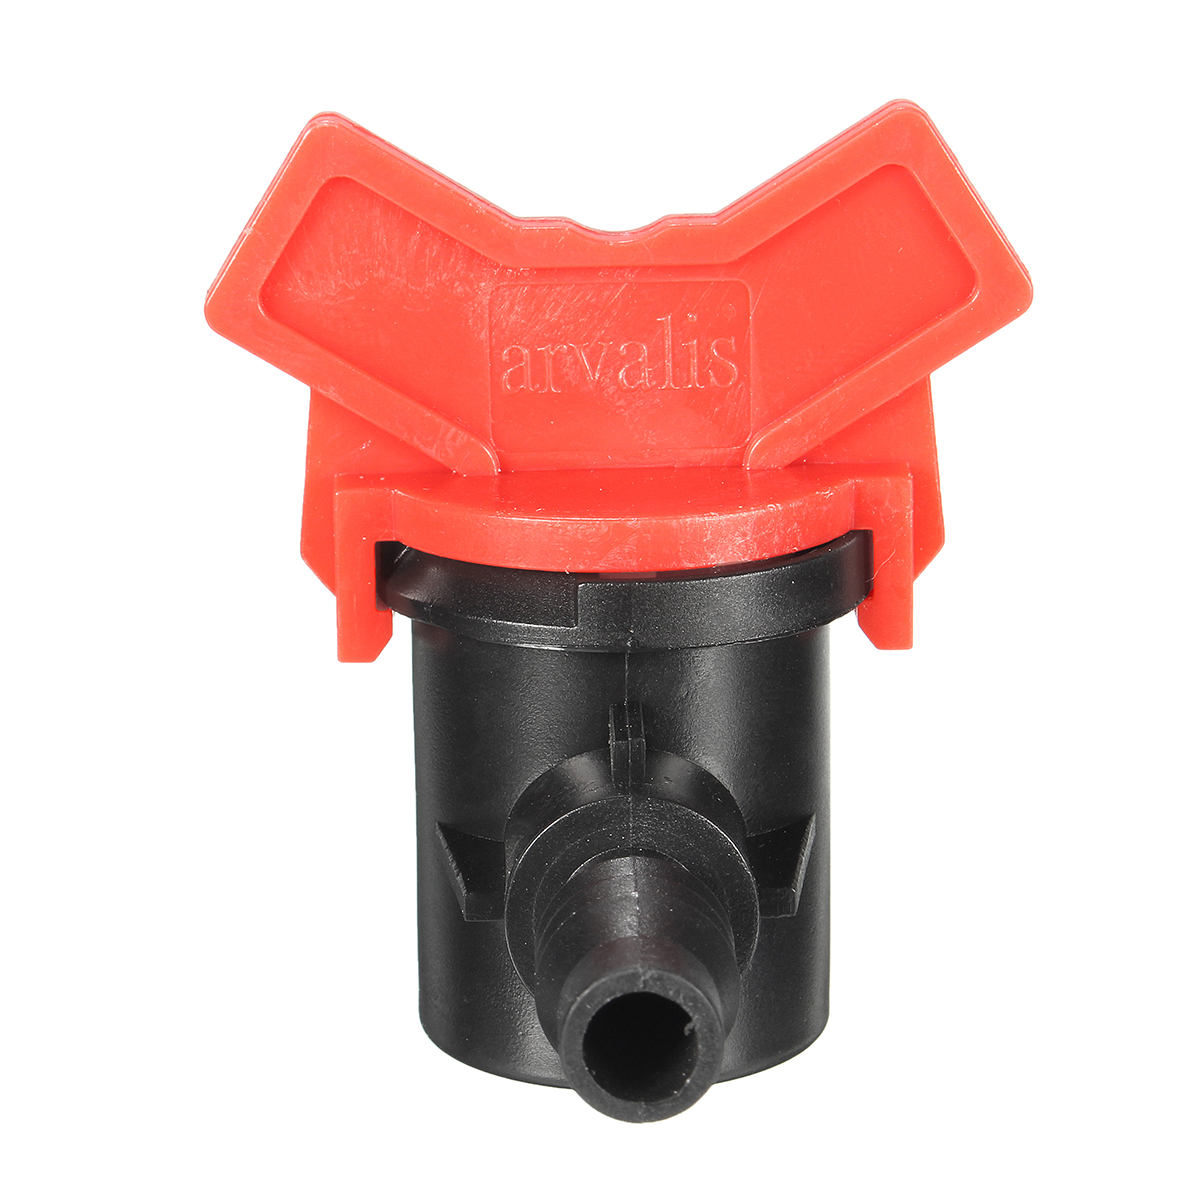 Garden Irrigation Valve Brab Ball Shut-off Connectors Plastic for Water Pipe Hose Tube